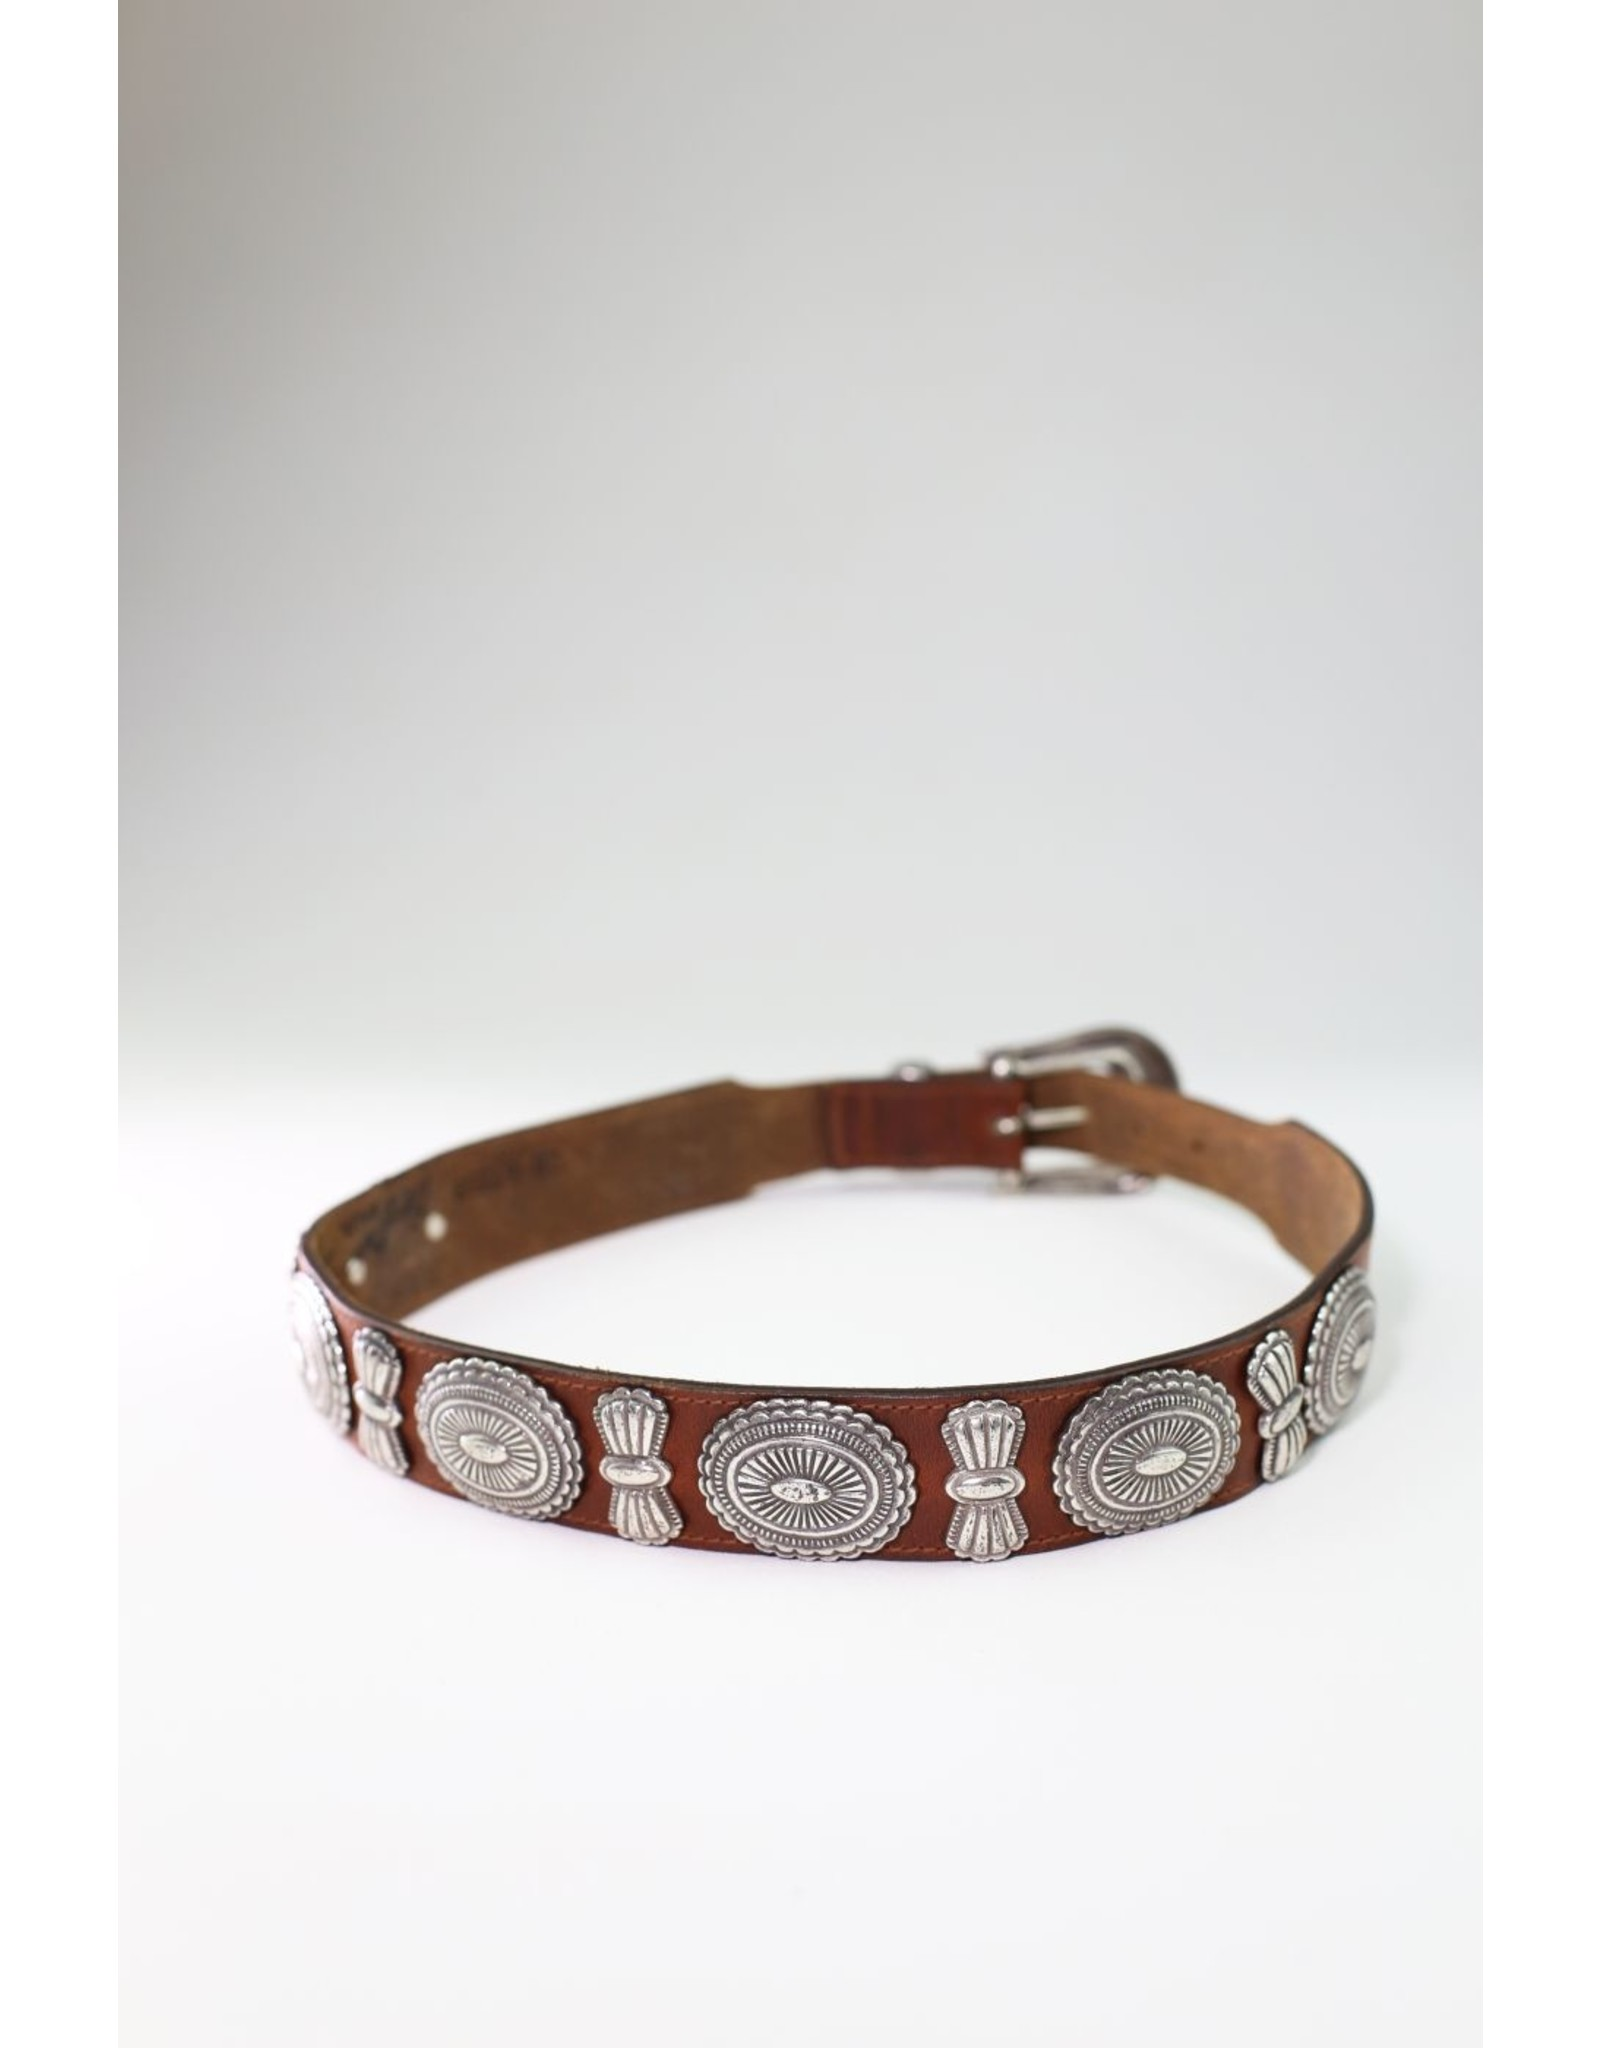 1980's Classic Western Brown Leather Belt